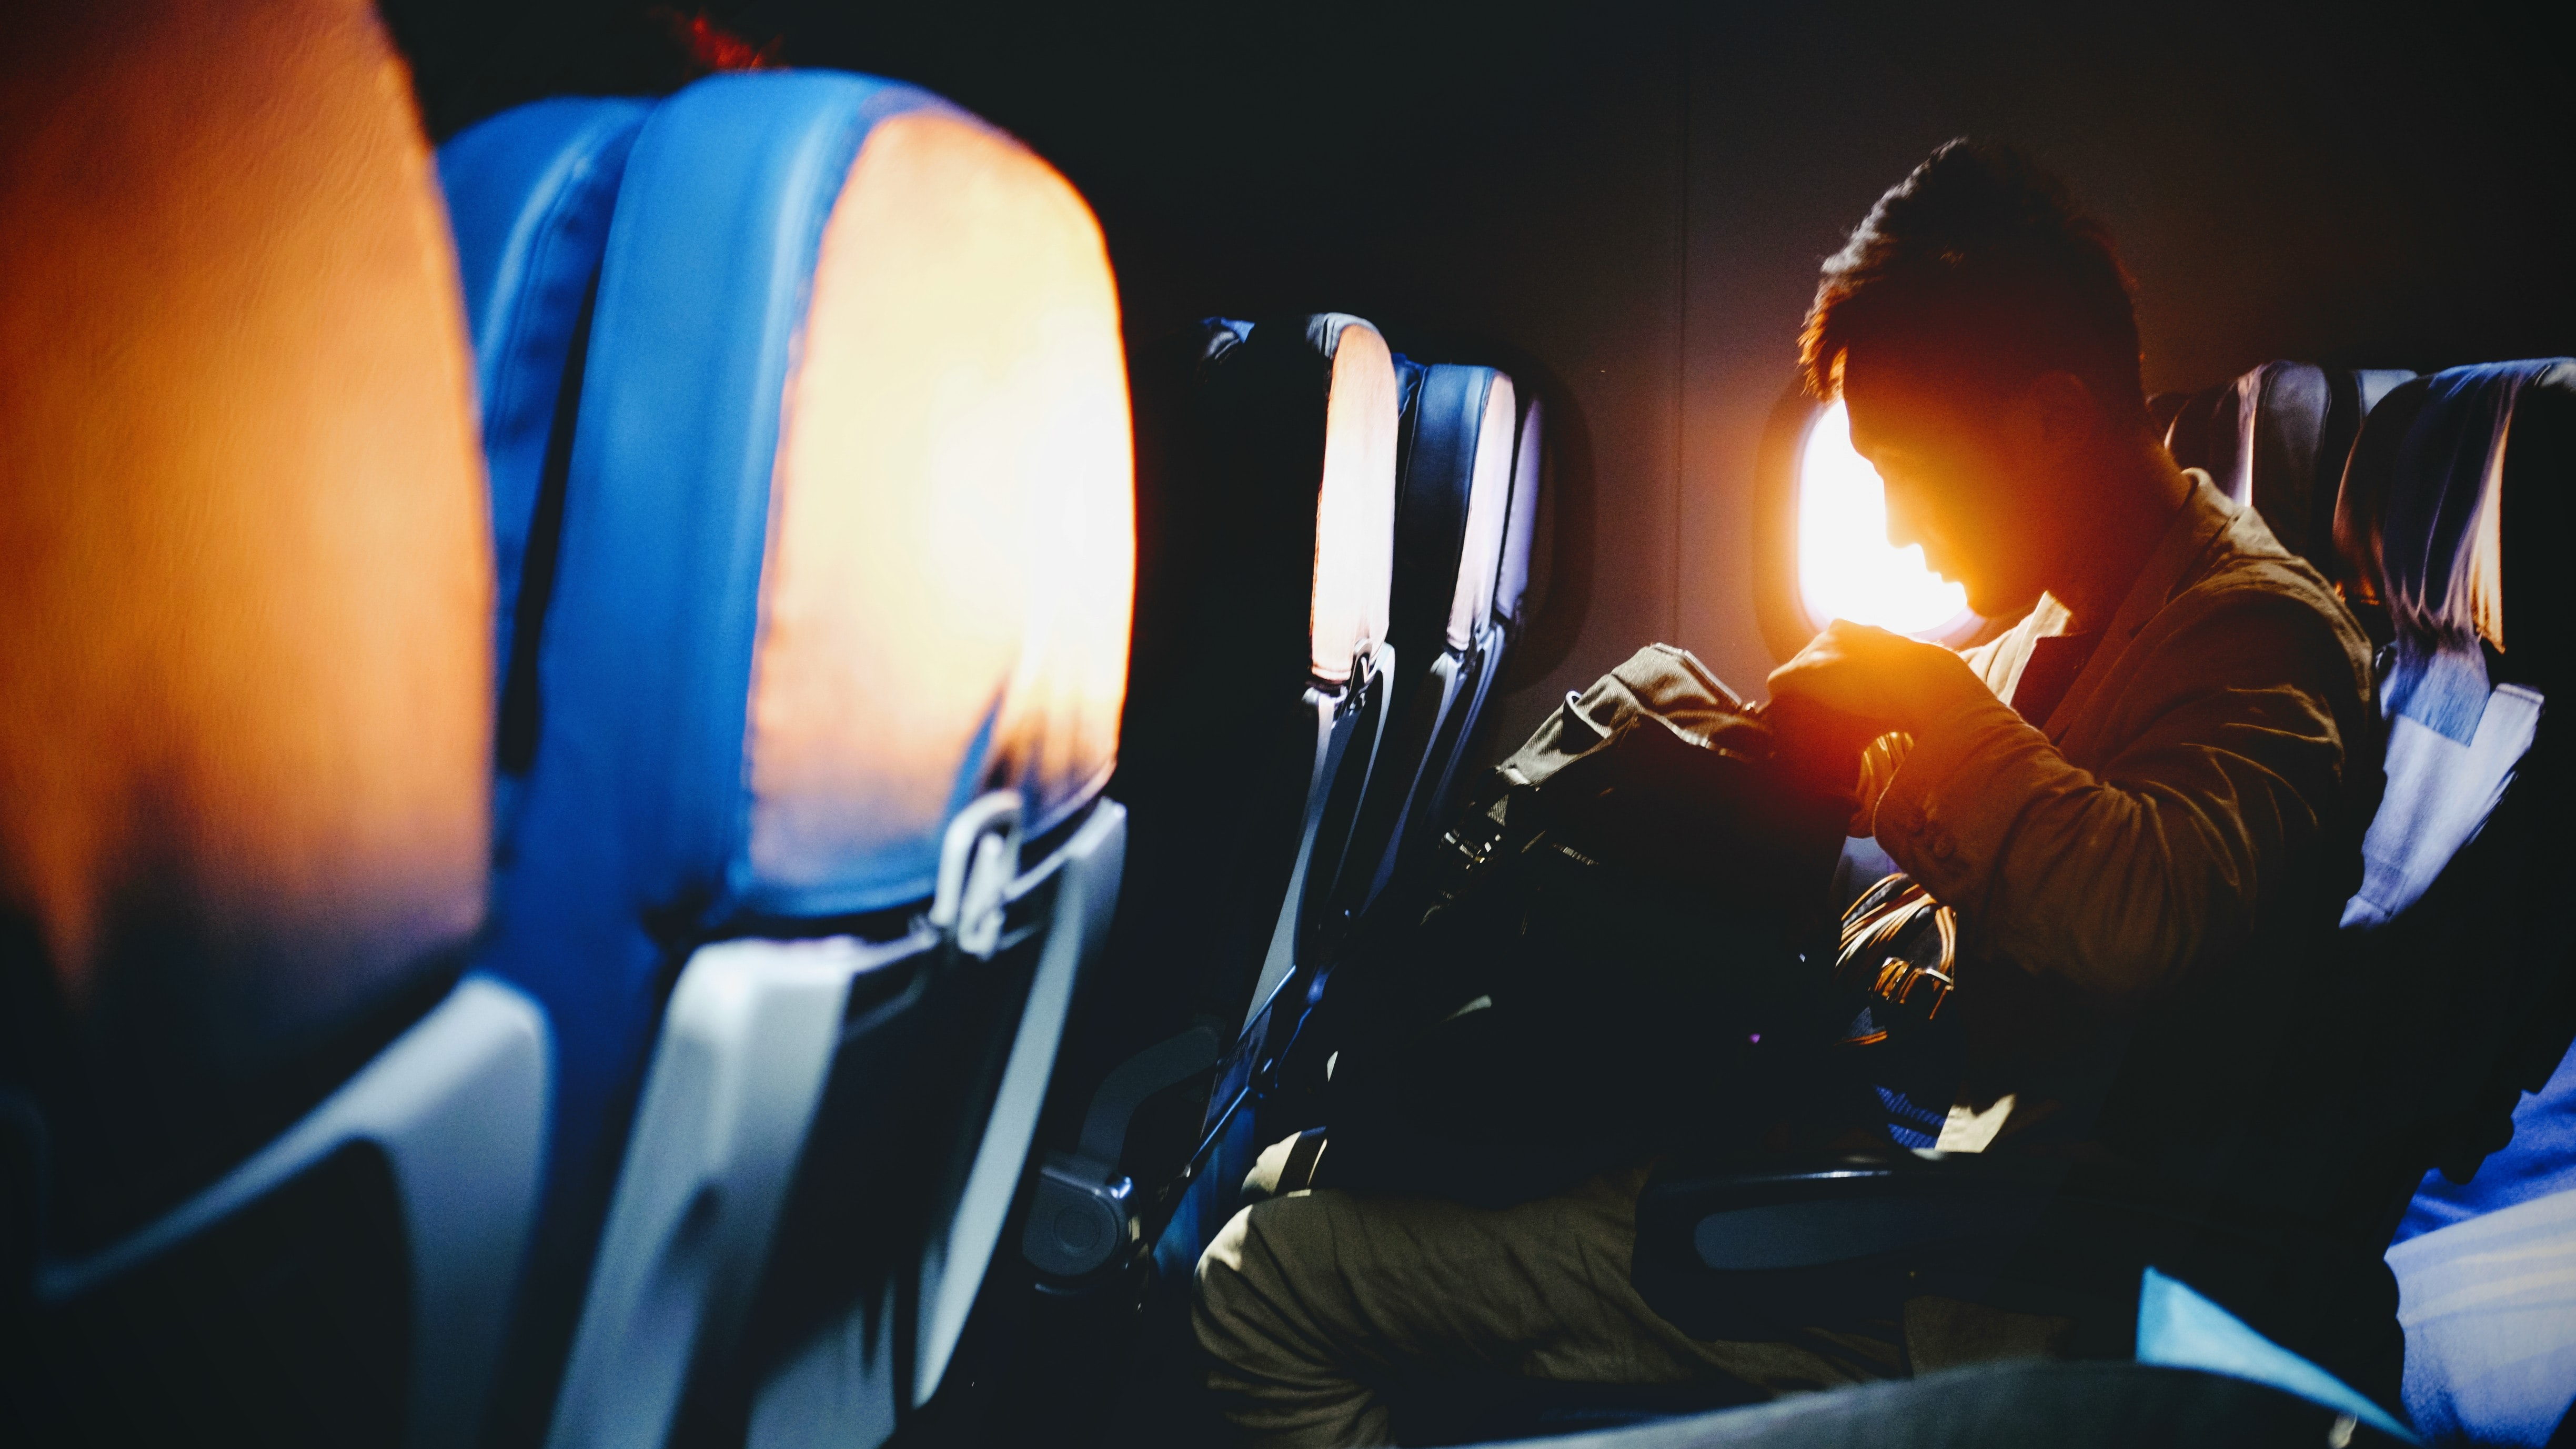 man looking on his sitting on plane seat